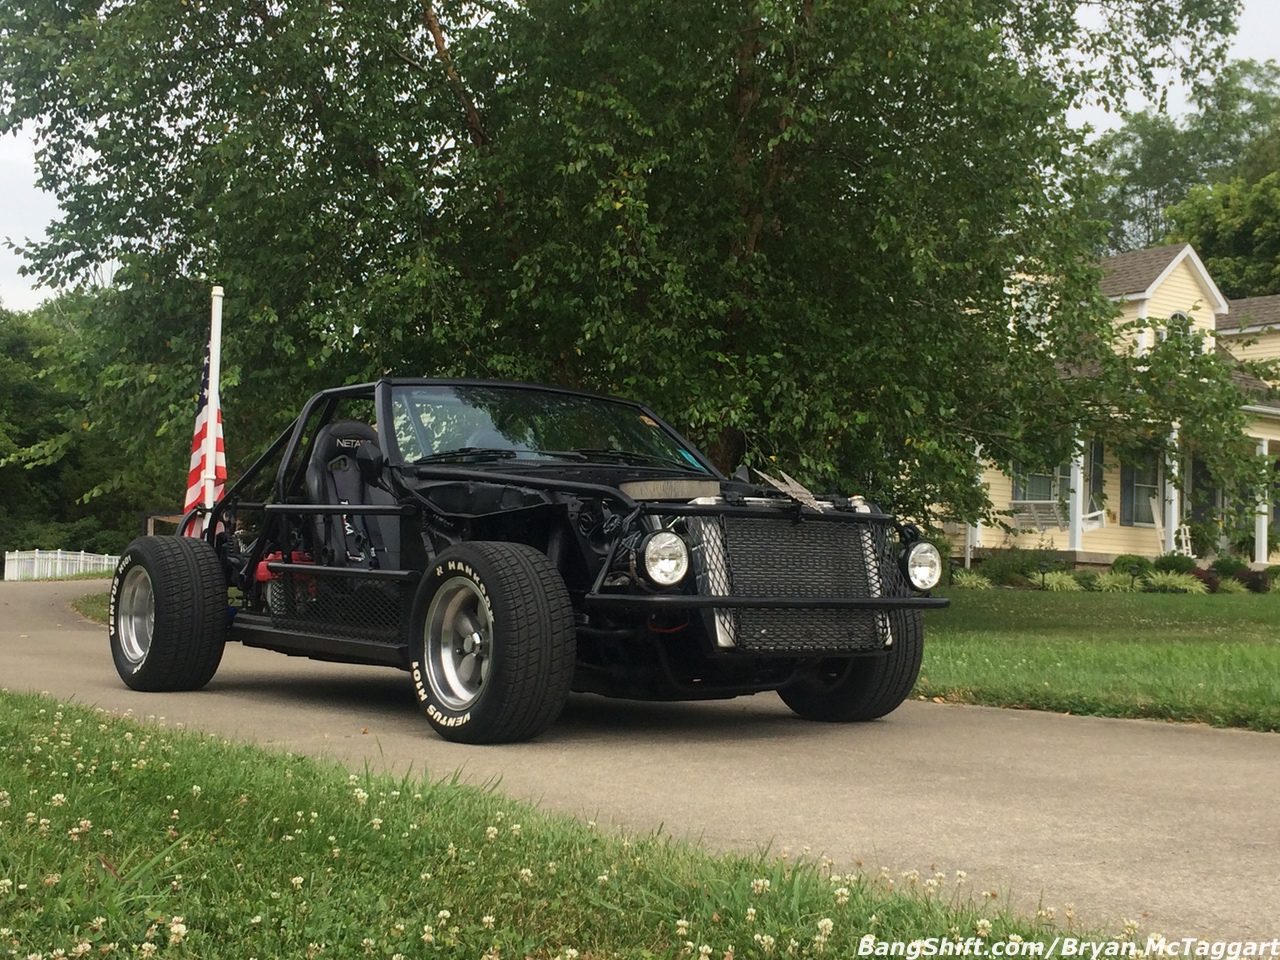 FoxKart: How An Ohio-Rotted 1986 Mustang Convertible Got A Second Lease On Life!